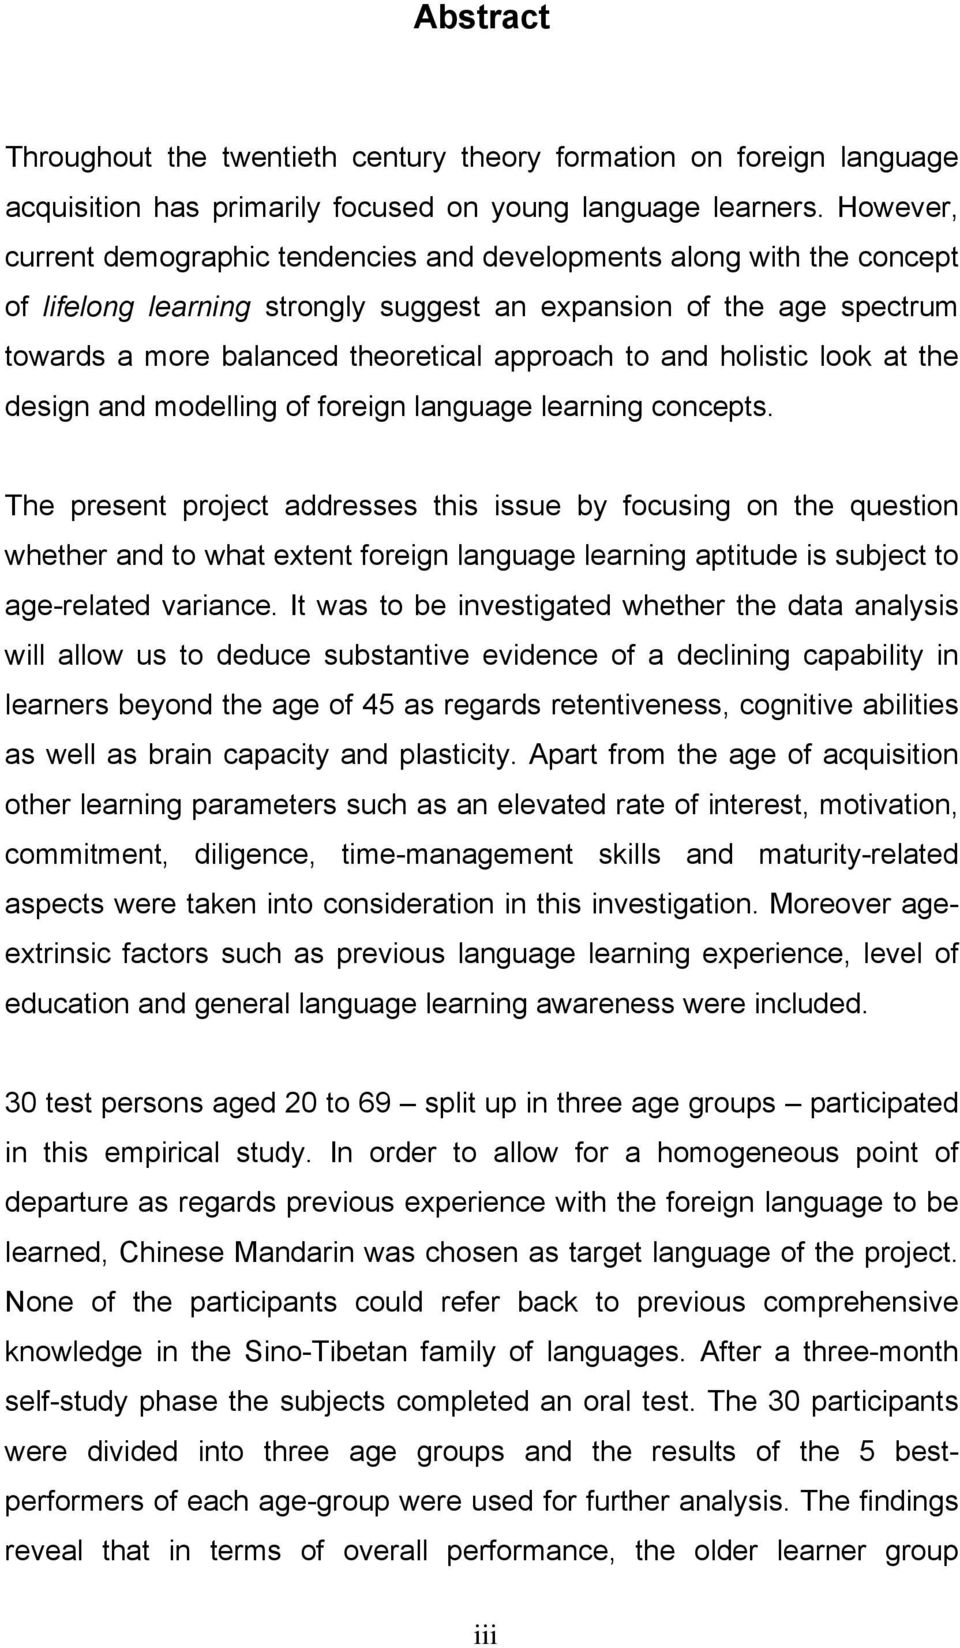 and holistic look at the design and modelling of foreign language learning concepts.